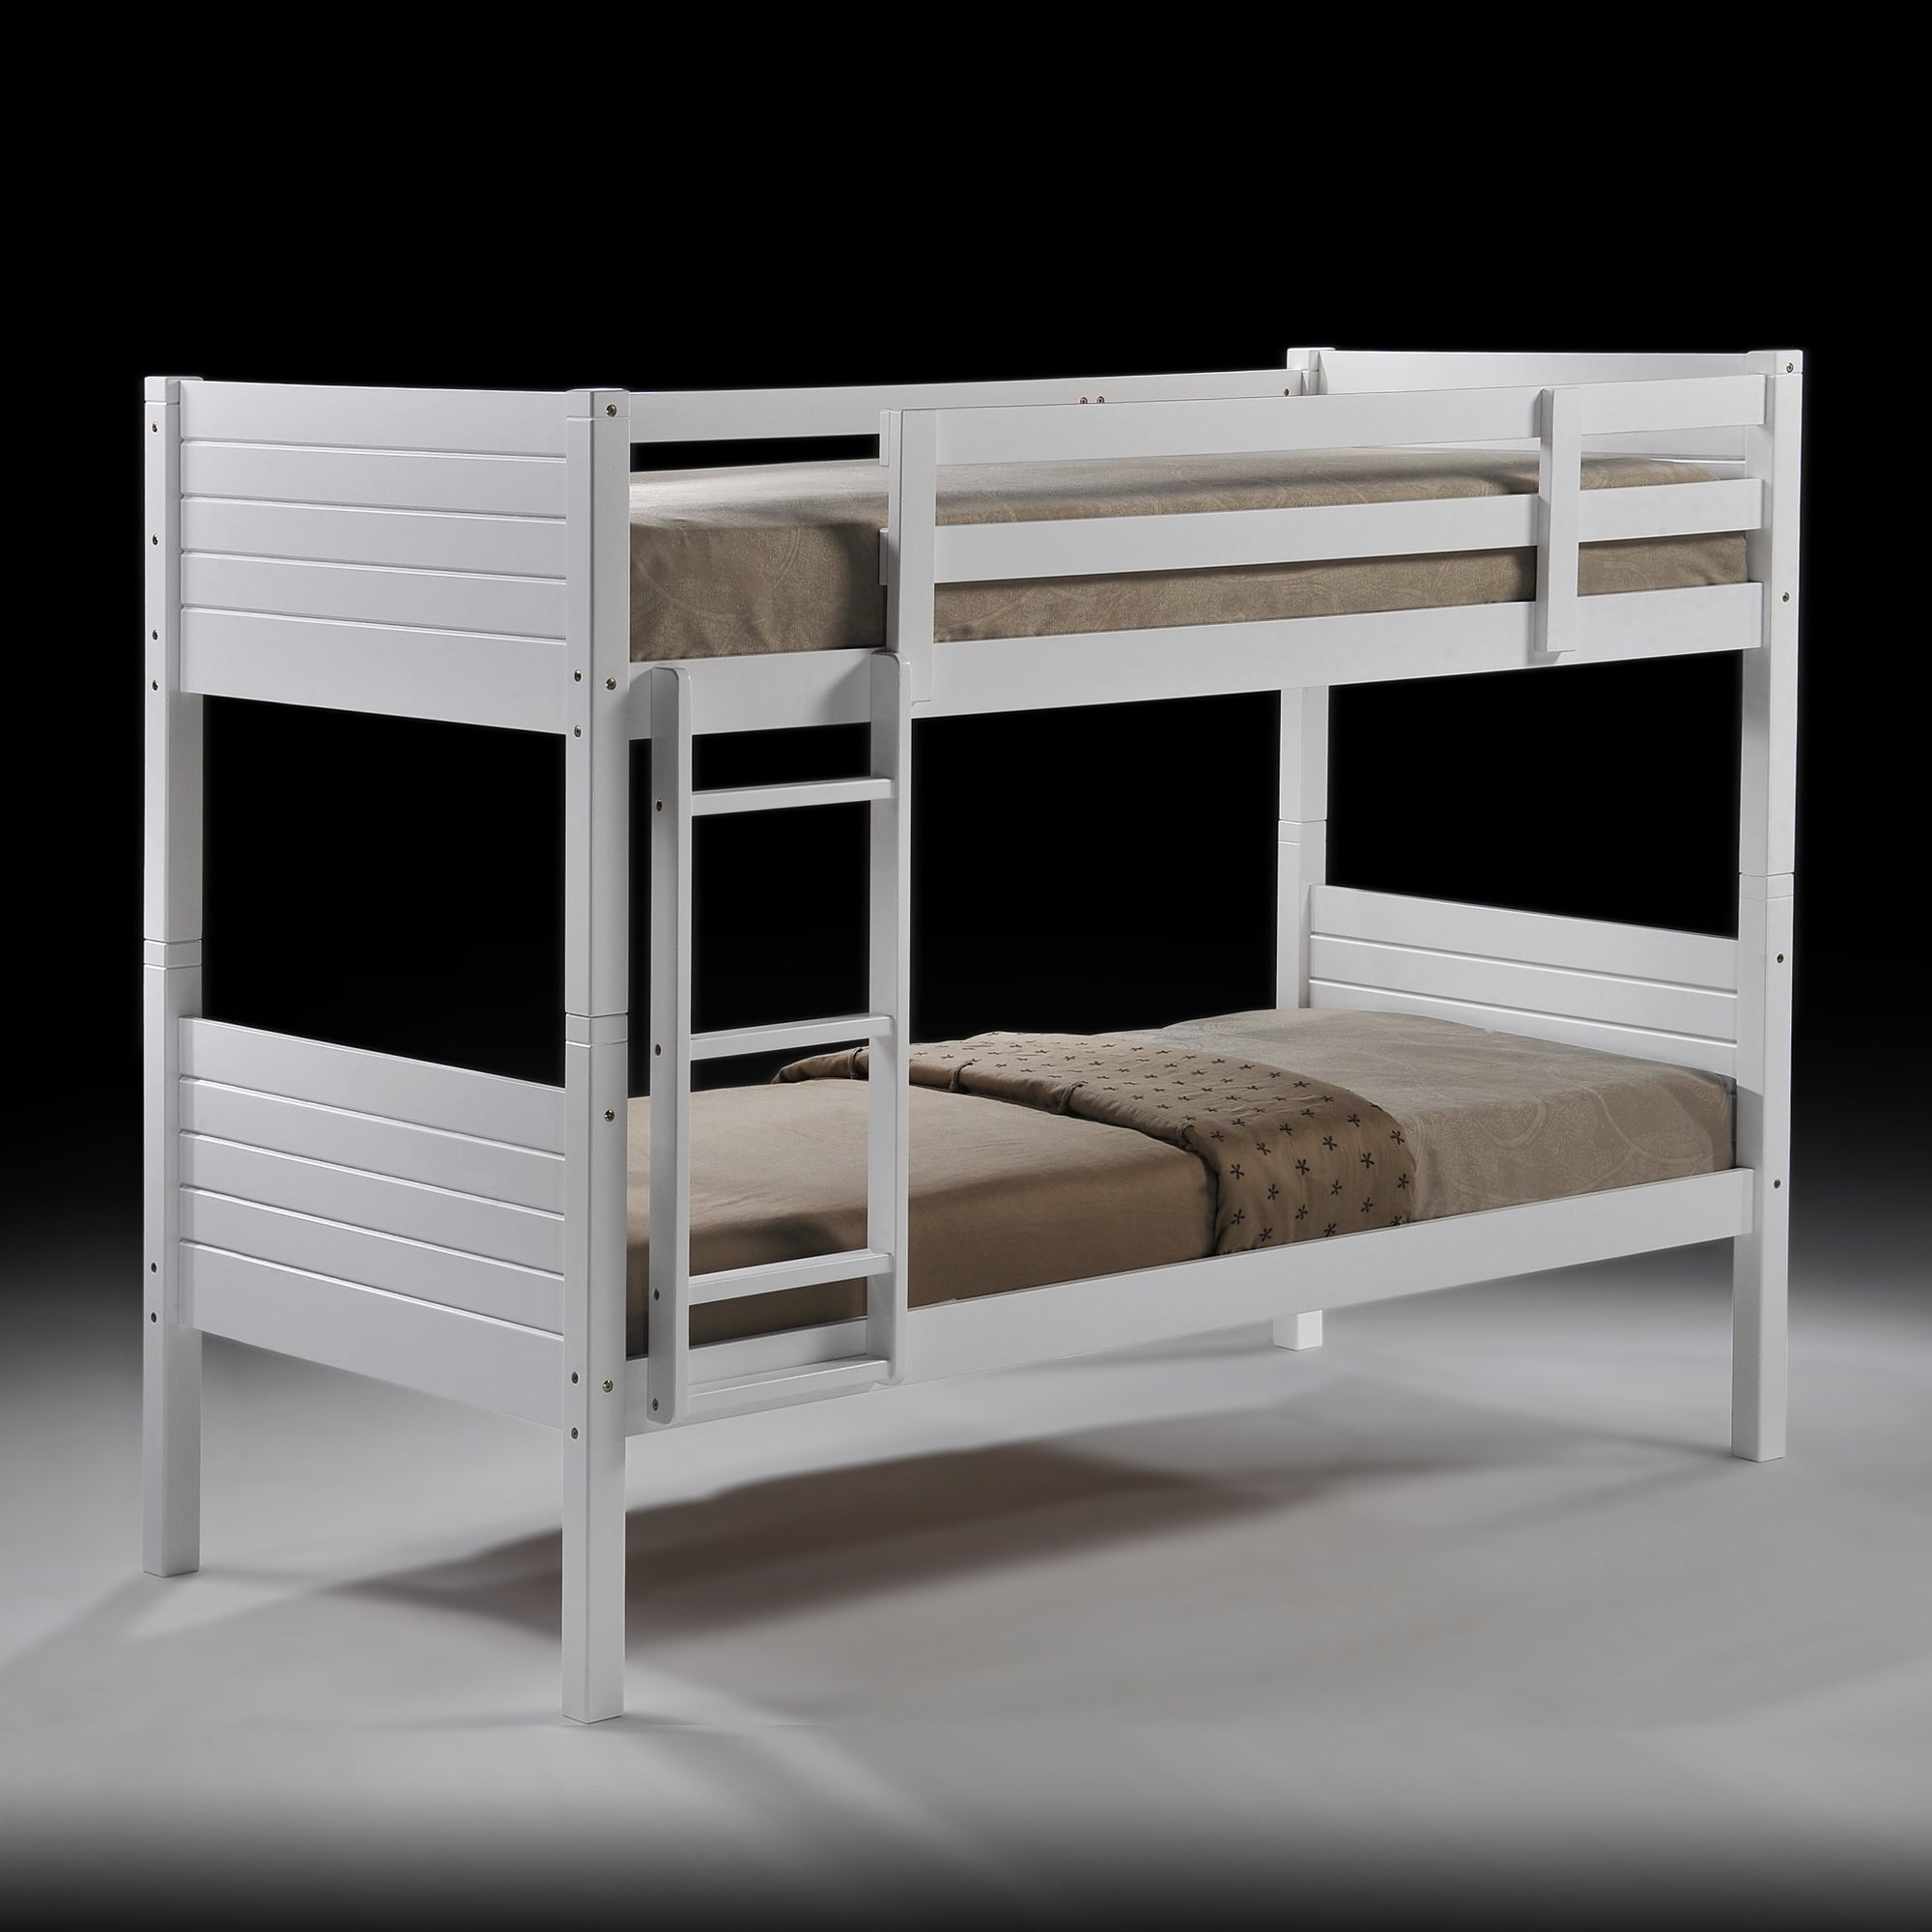 James Bunk Bed Frame - The Furniture Store & The Bed Shop